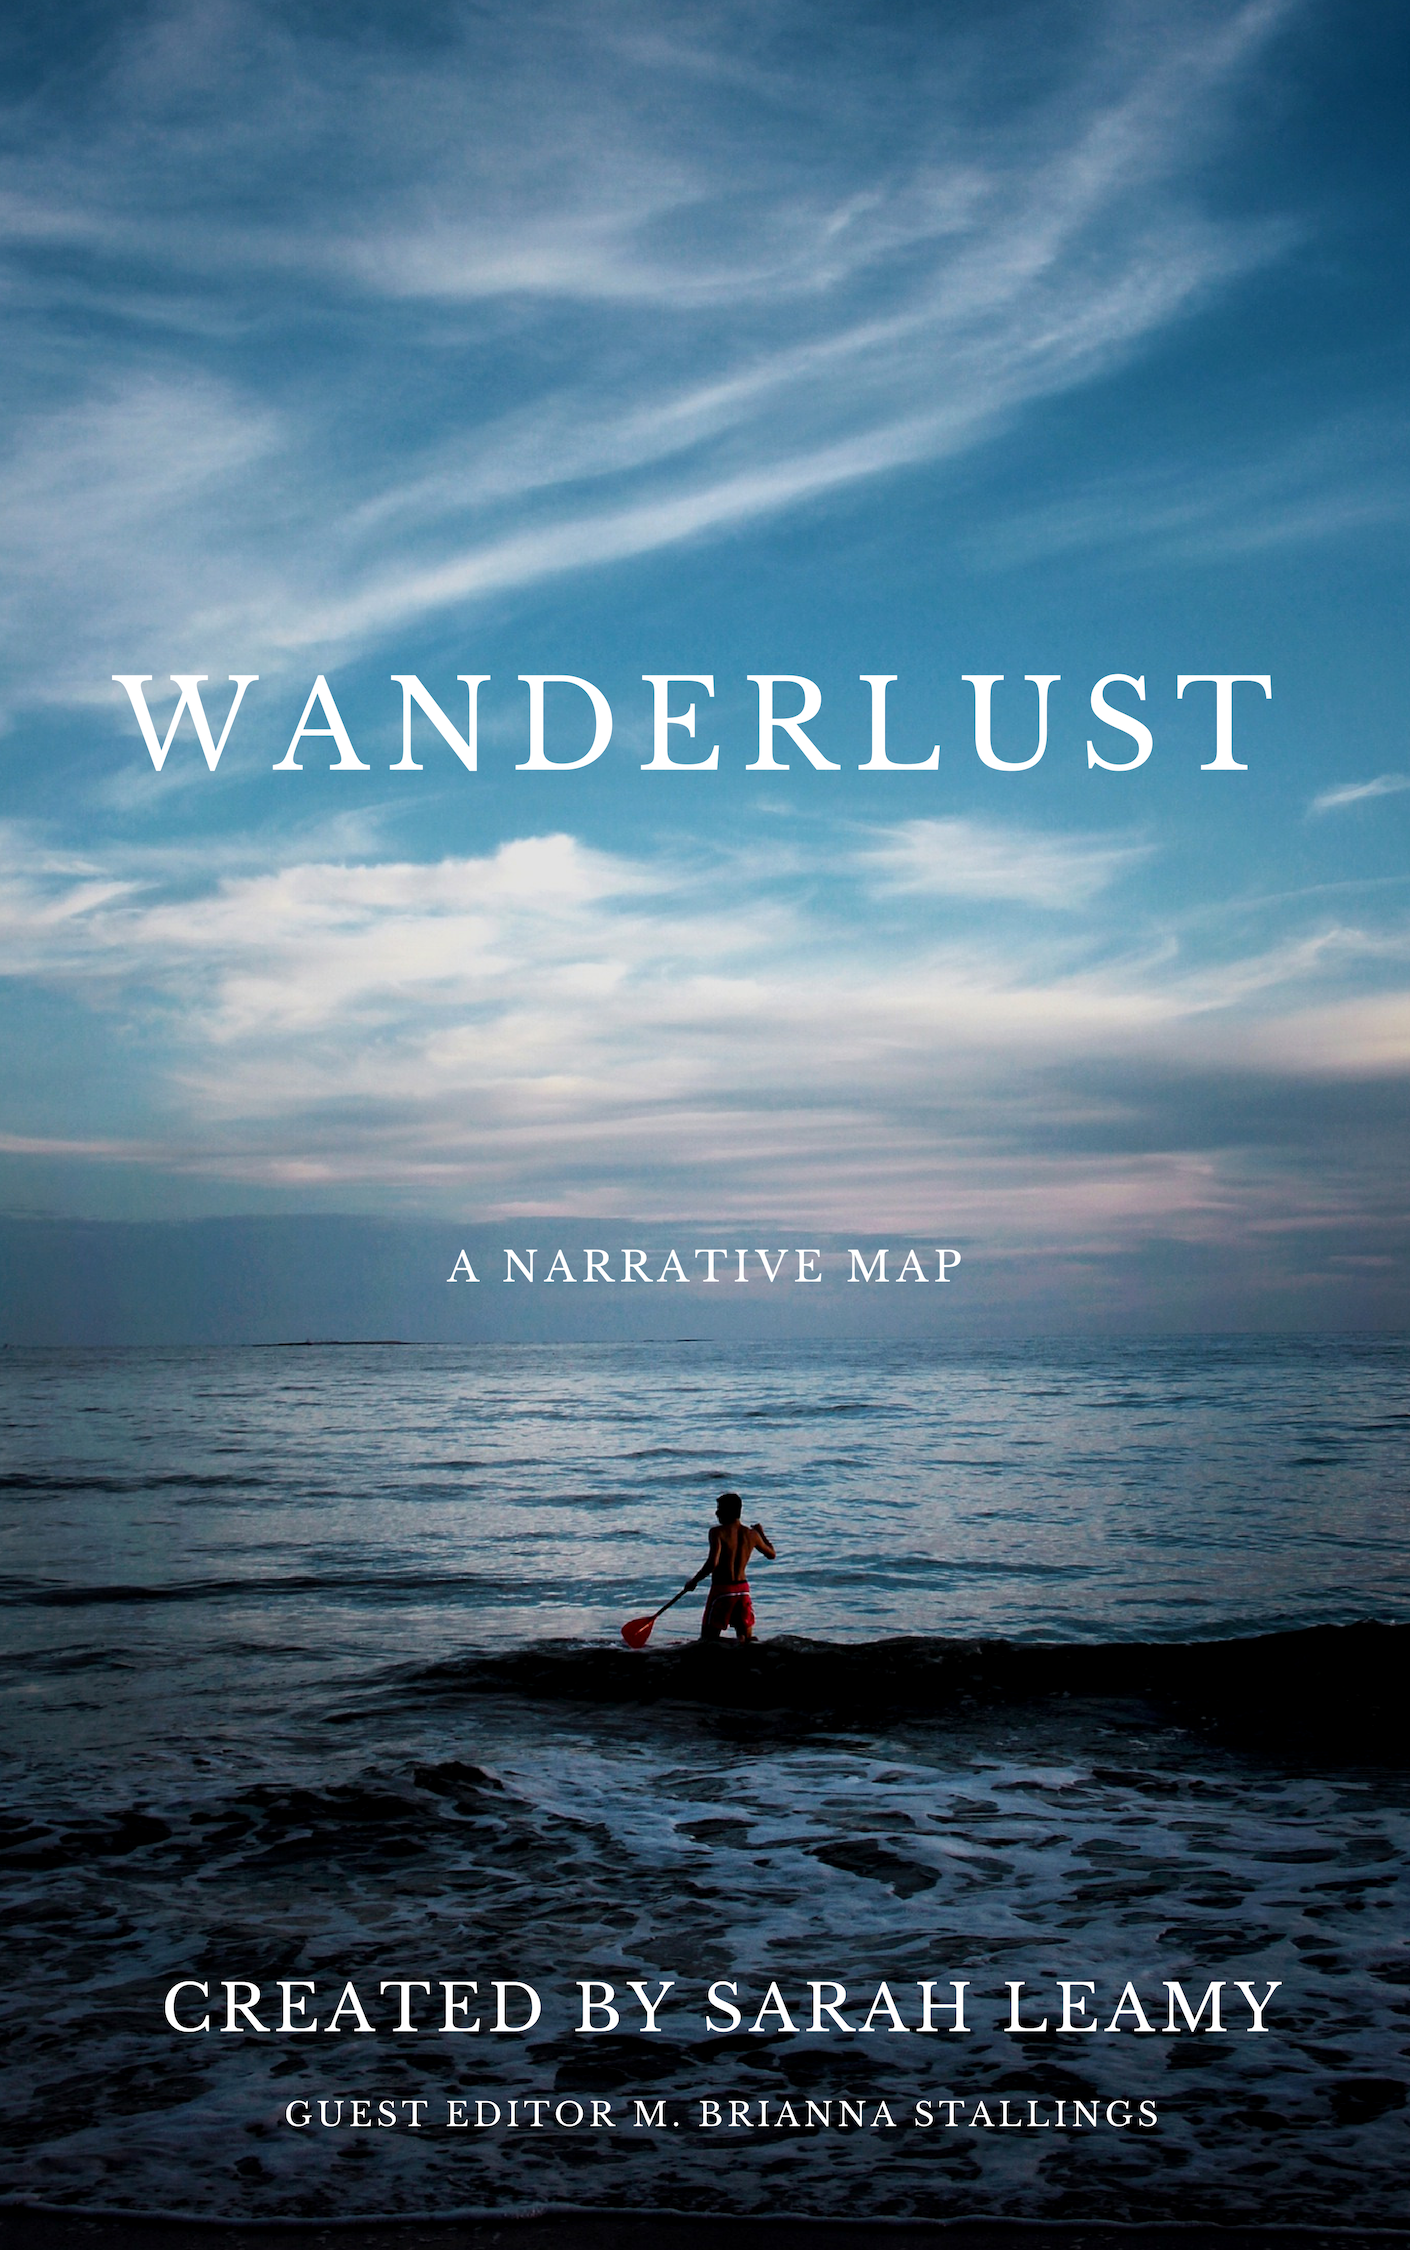 cover image A Narrative Map